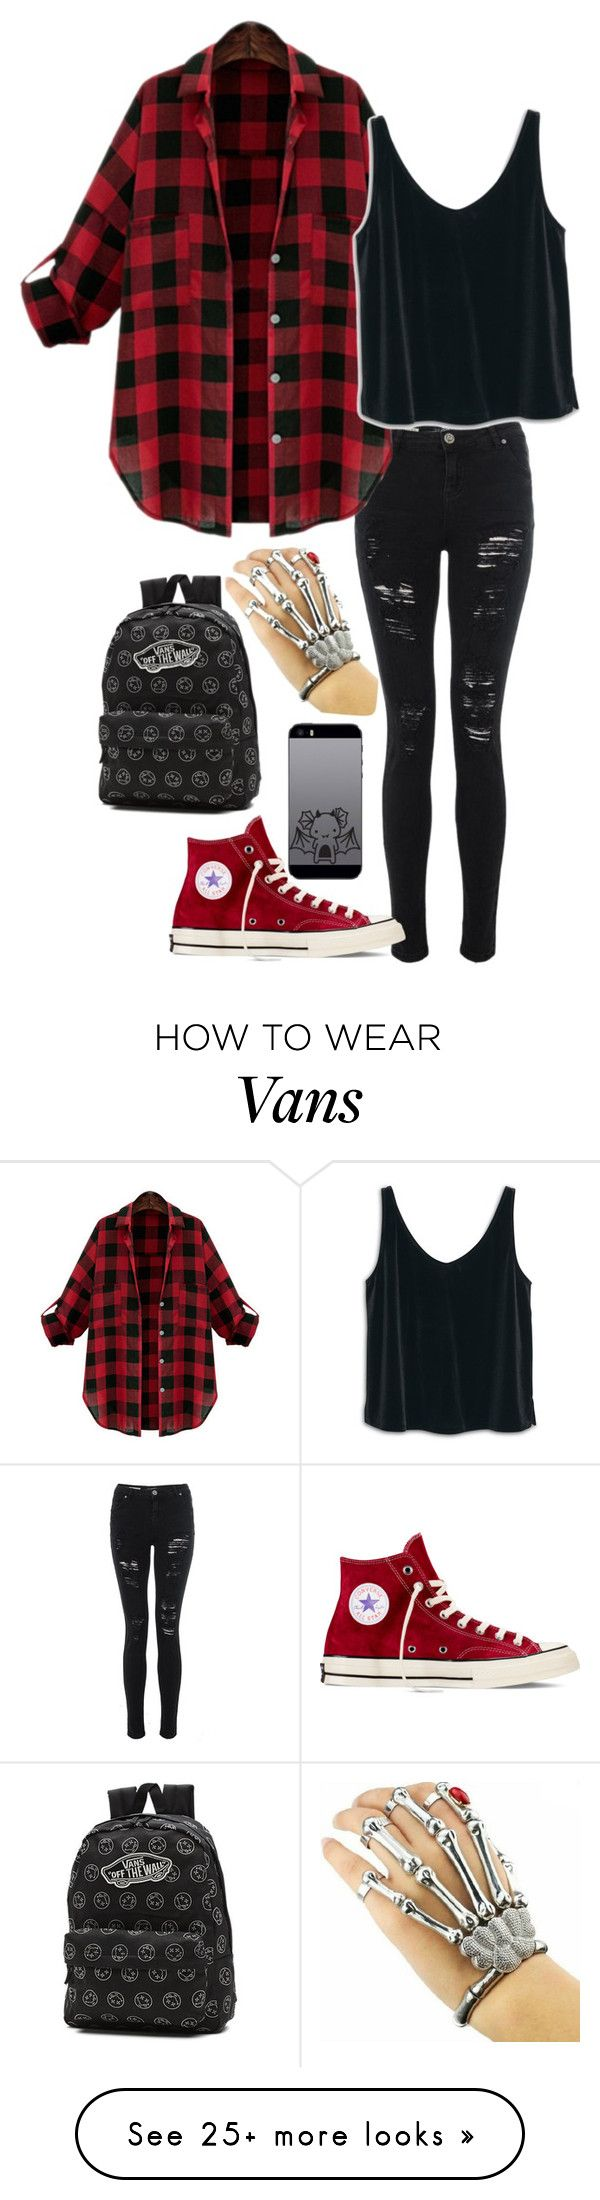 Rock punk outfits polyvore